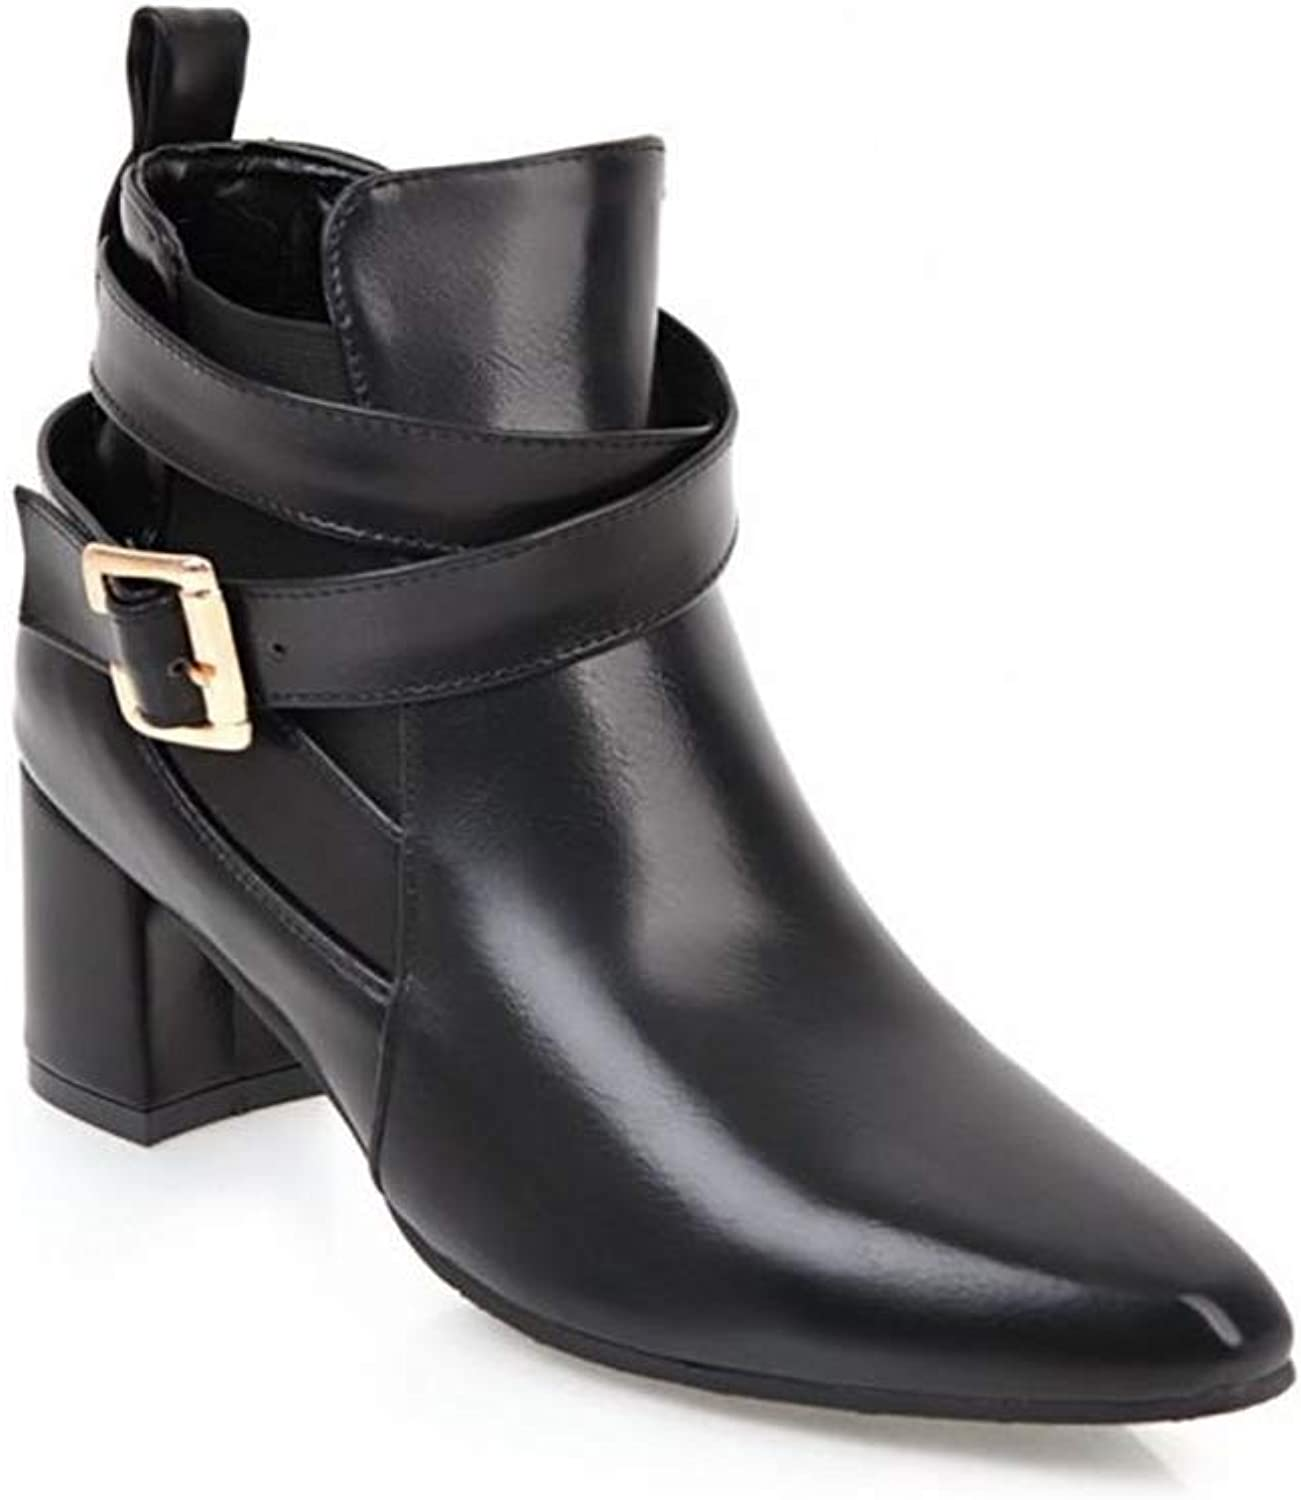 Super explosion Women's Pointed Toe Leather Buckle Strap Block Heel Ankle Booties